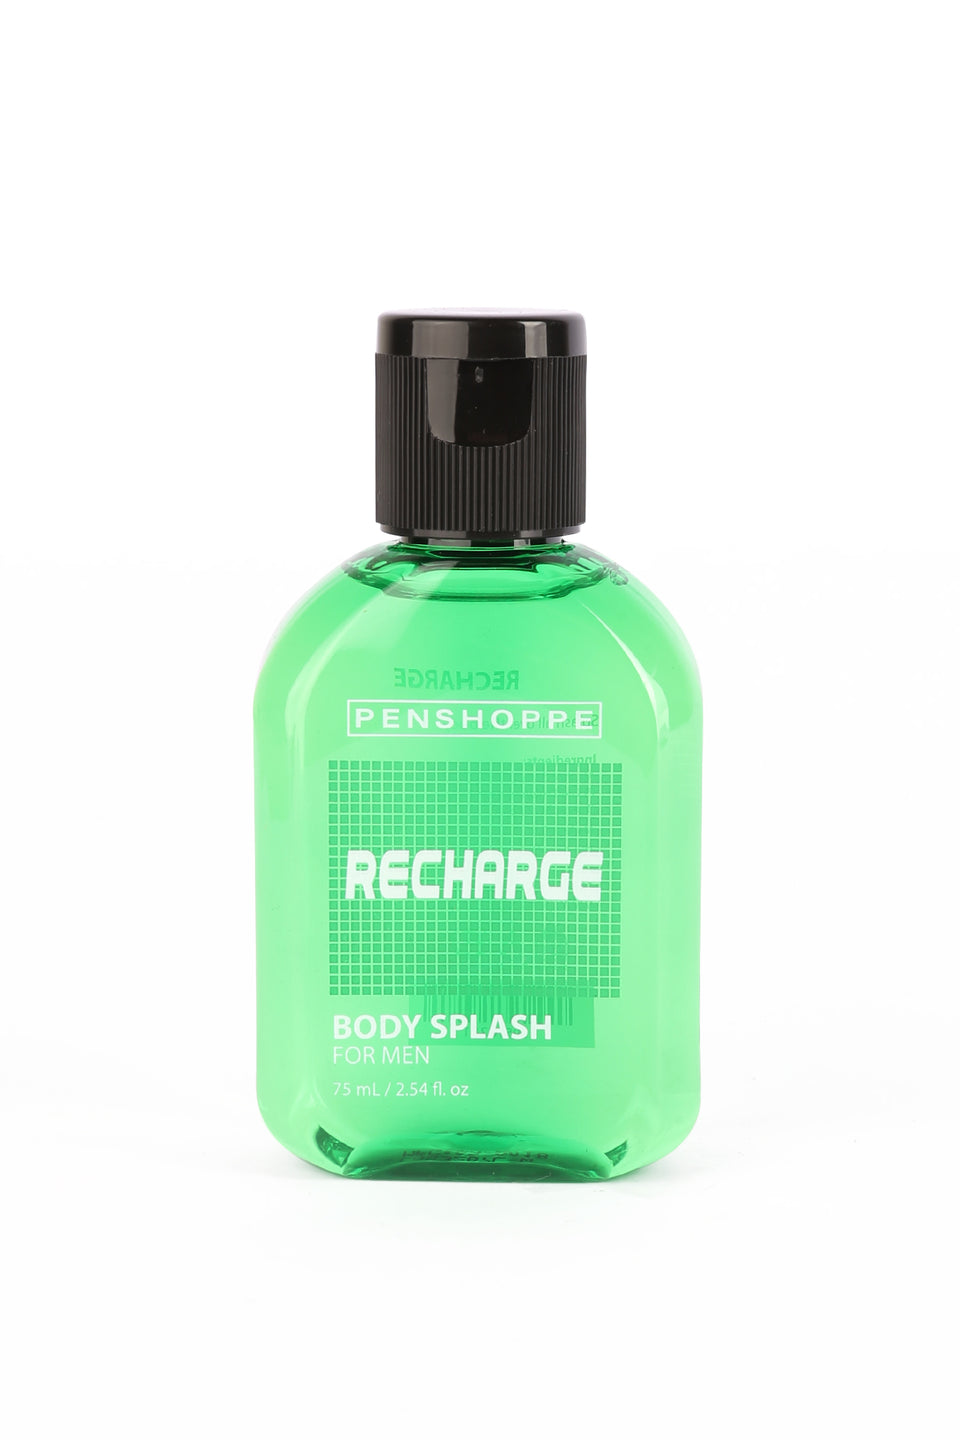 Penshoppe Recharge Cologne For Men 75ML